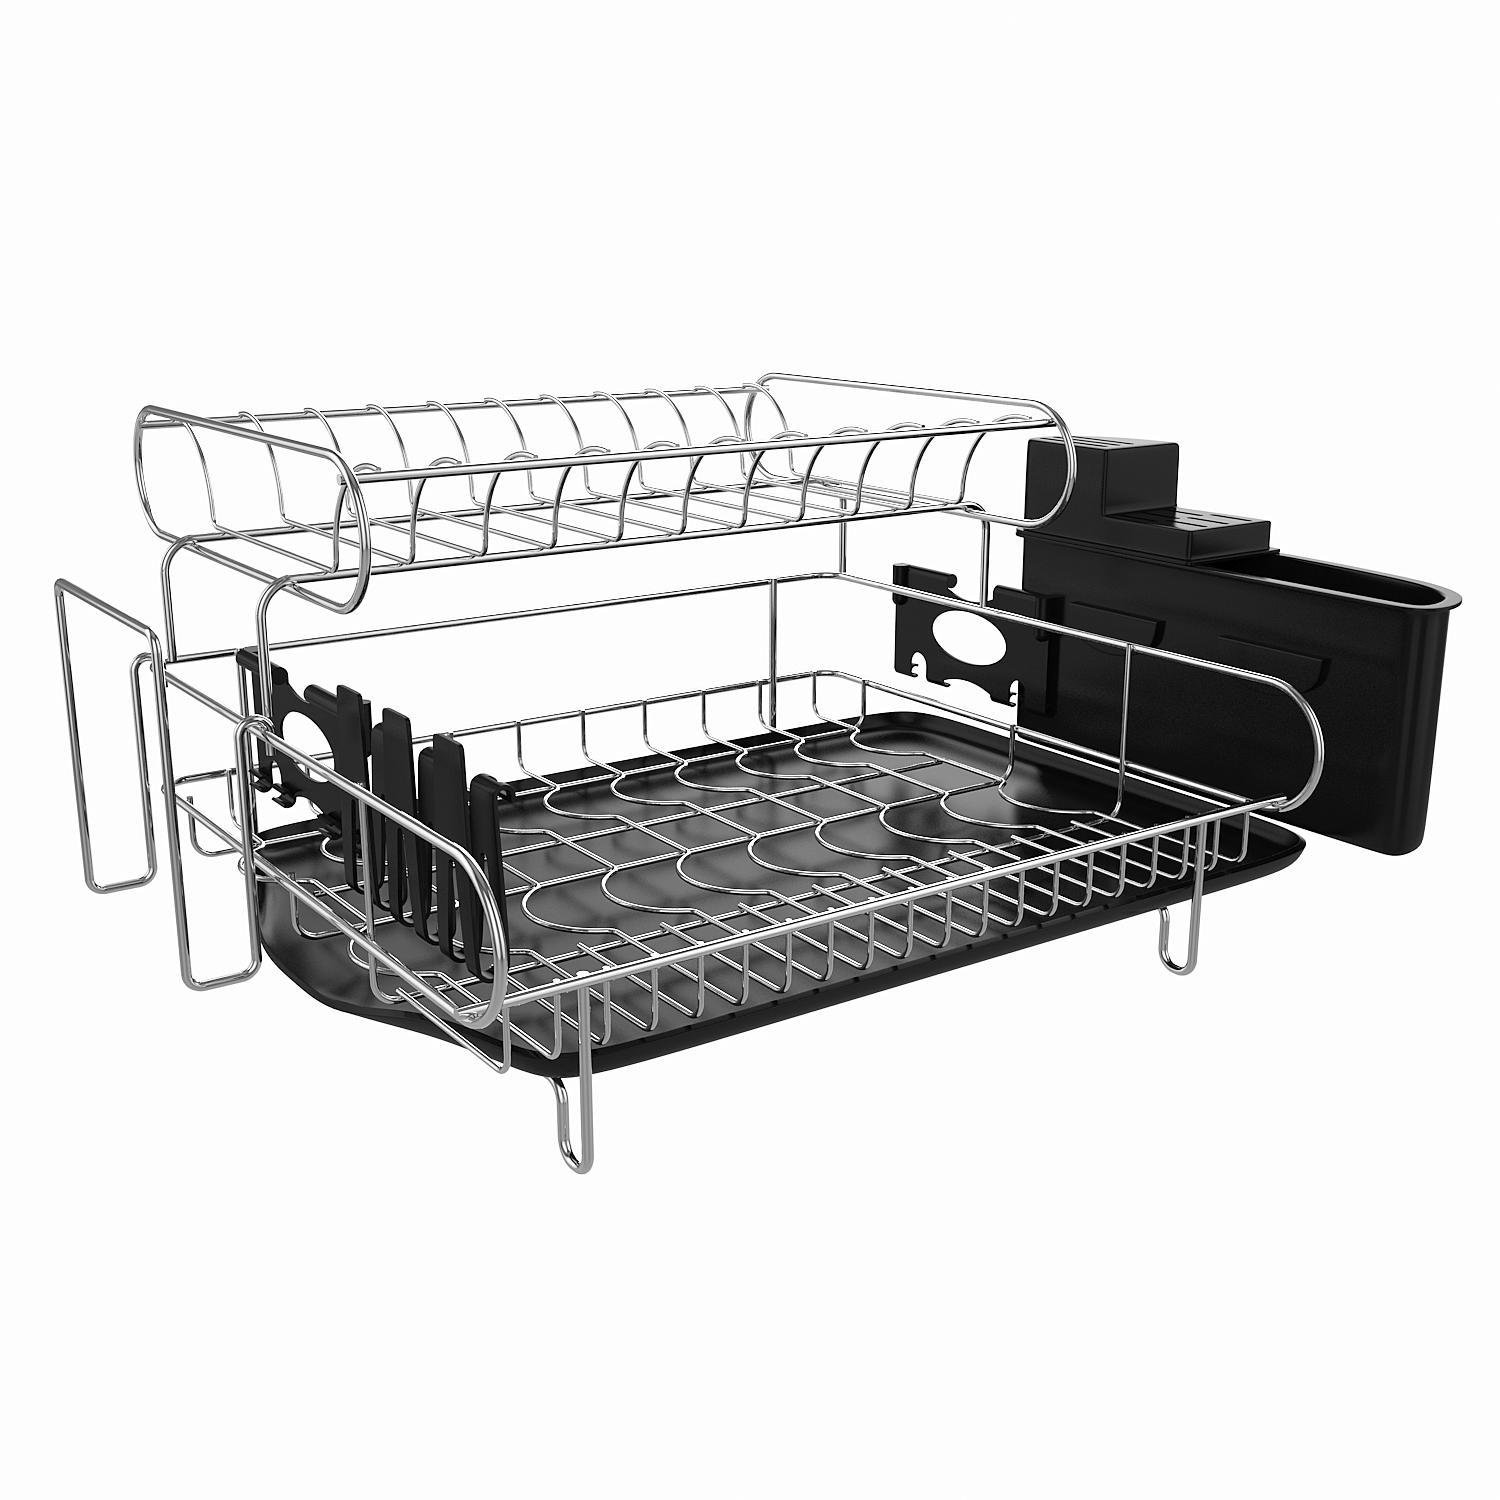 Fanala 304 Stainless Steel Professional 2 Tier Dish Drying Drainer Rack Large Capacity with Microfiber Mat Kitchen Utensil Holder